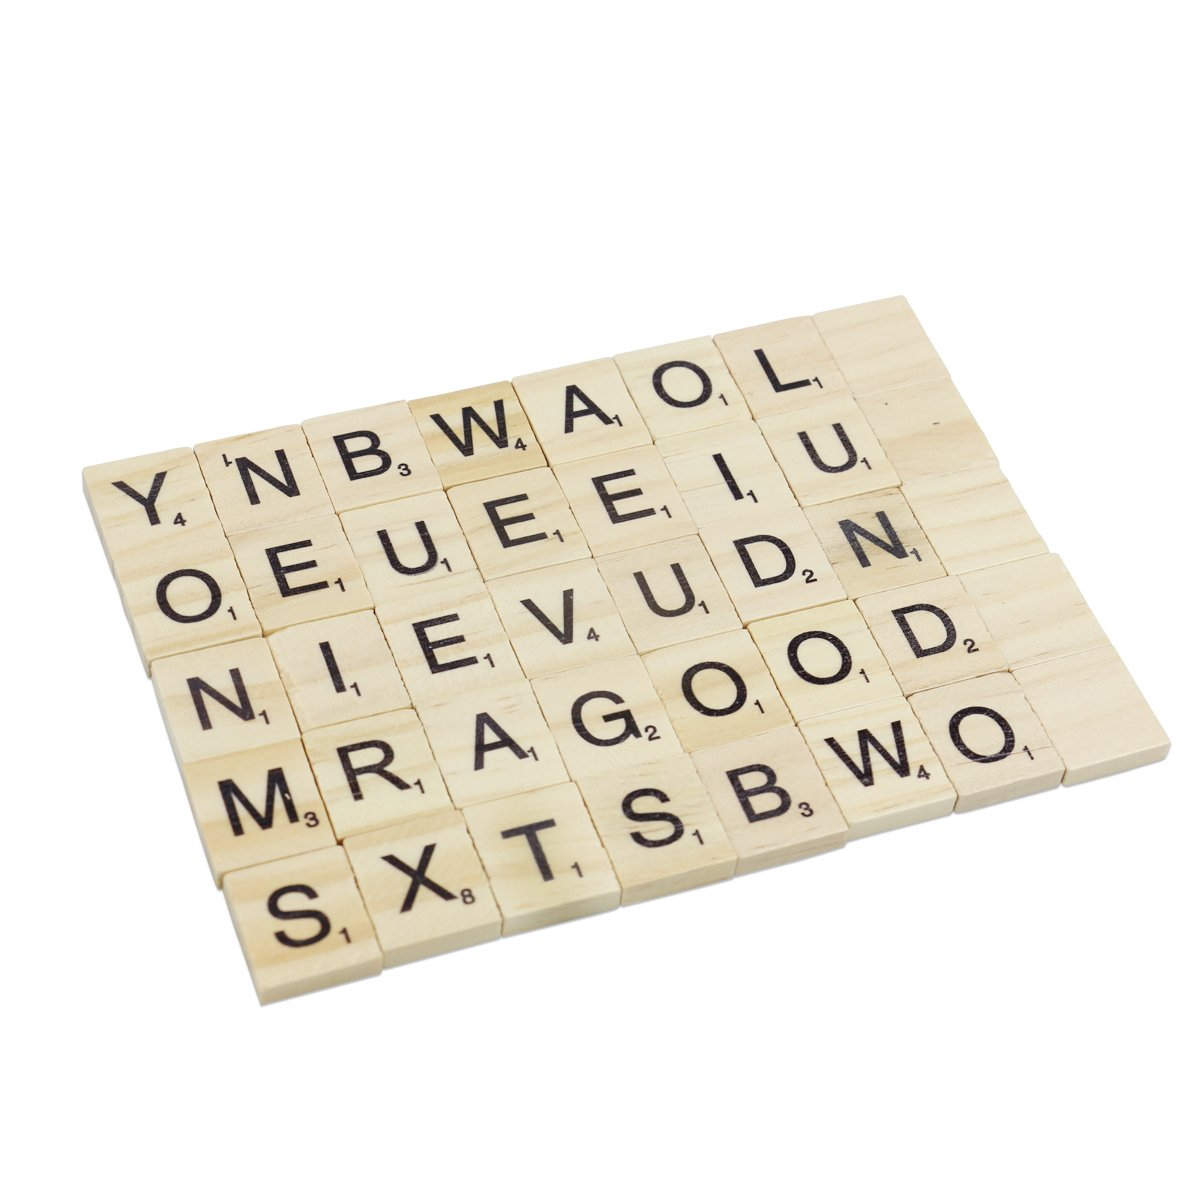 Rocita 100 Wooden Scrabble Tiles DIY Letter Tiles for Pre-school Kids Education Crossword Puzzle